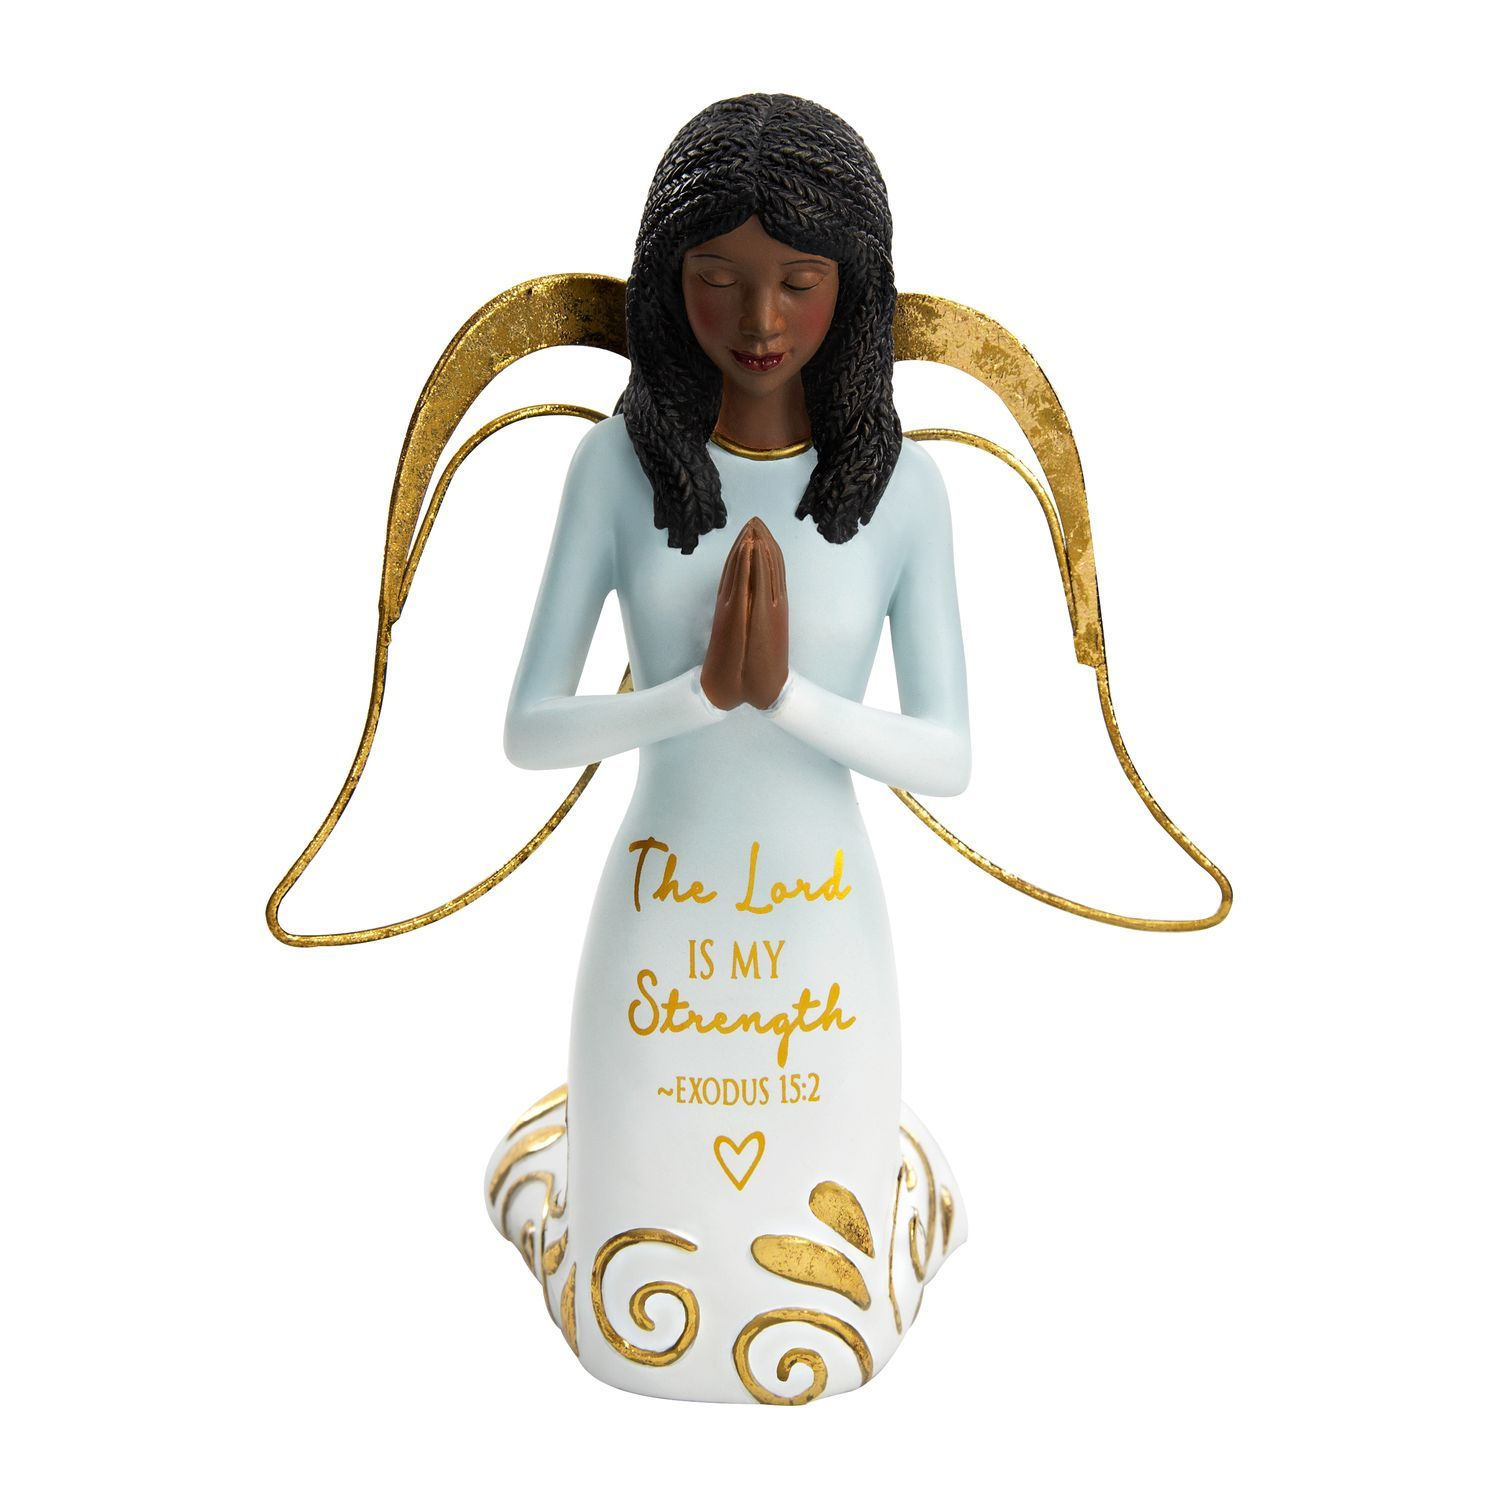 The Lord is My Strength by Amylee Weeks: African American Angel Figurine (Front)